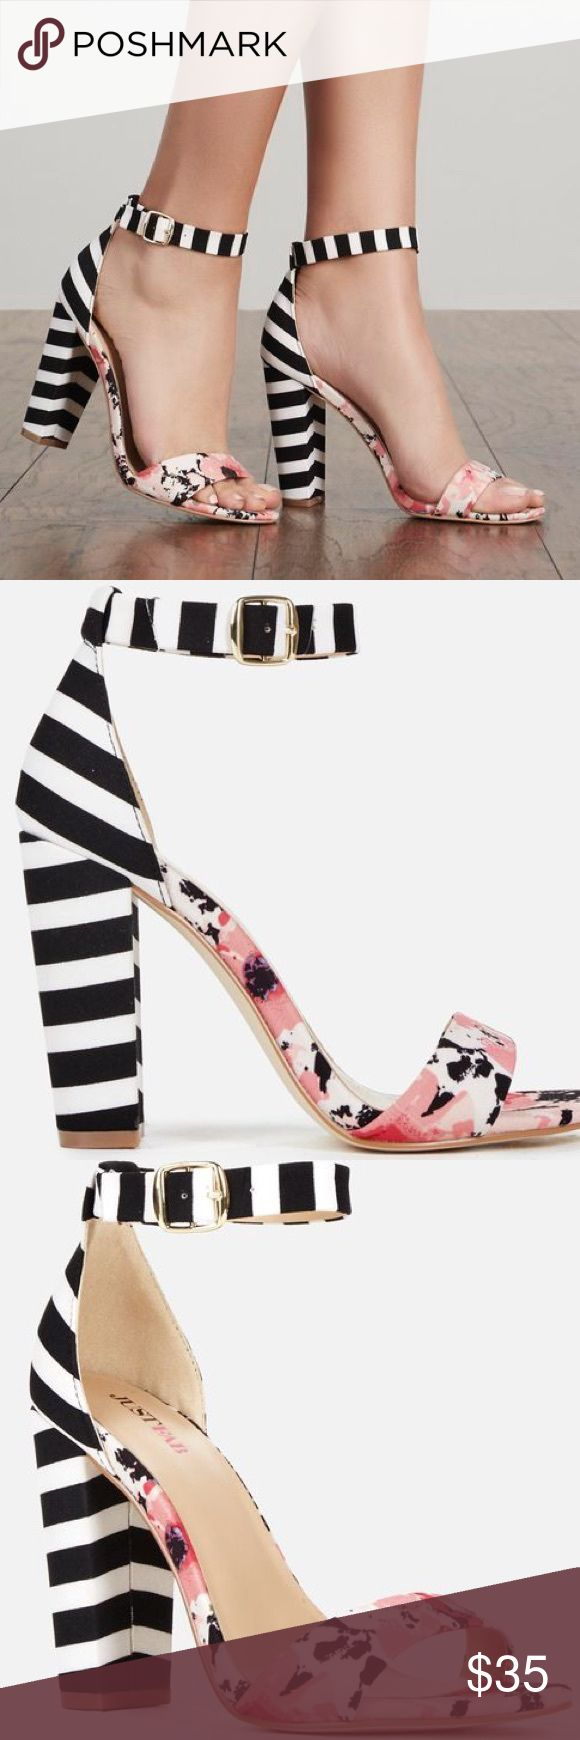 "JustFab Floral/Striped Sandal Heel Perfect shoe to add ""pop"" to your outfit.  4-inch heel. Brand new, never worn. JustFab Shoes Sandals"